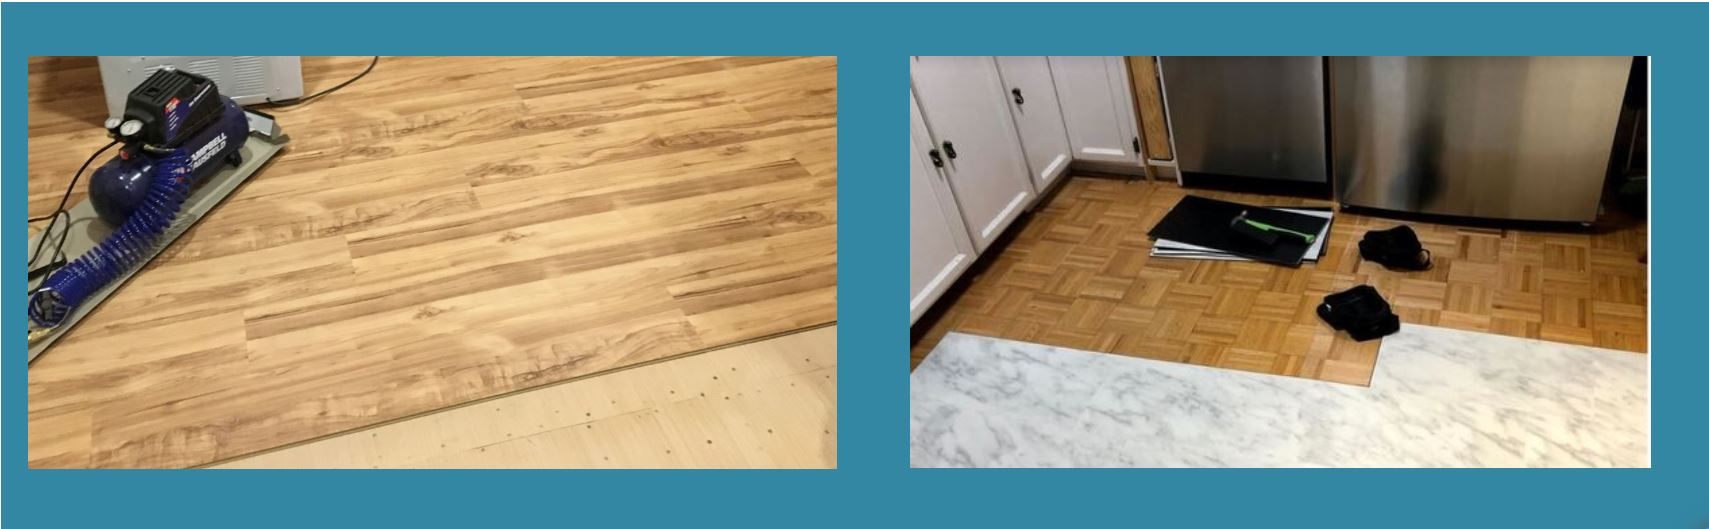 Two pictures side by side on a blue background taken in Cambridge, Ontario, the one on the left shows an air compressor resting on a floor half-finished with wooden click tile and a wooden underlay, the picture on the right shows a half-finished floor of white click tile on top of parkay flooring where two knee pads are resting